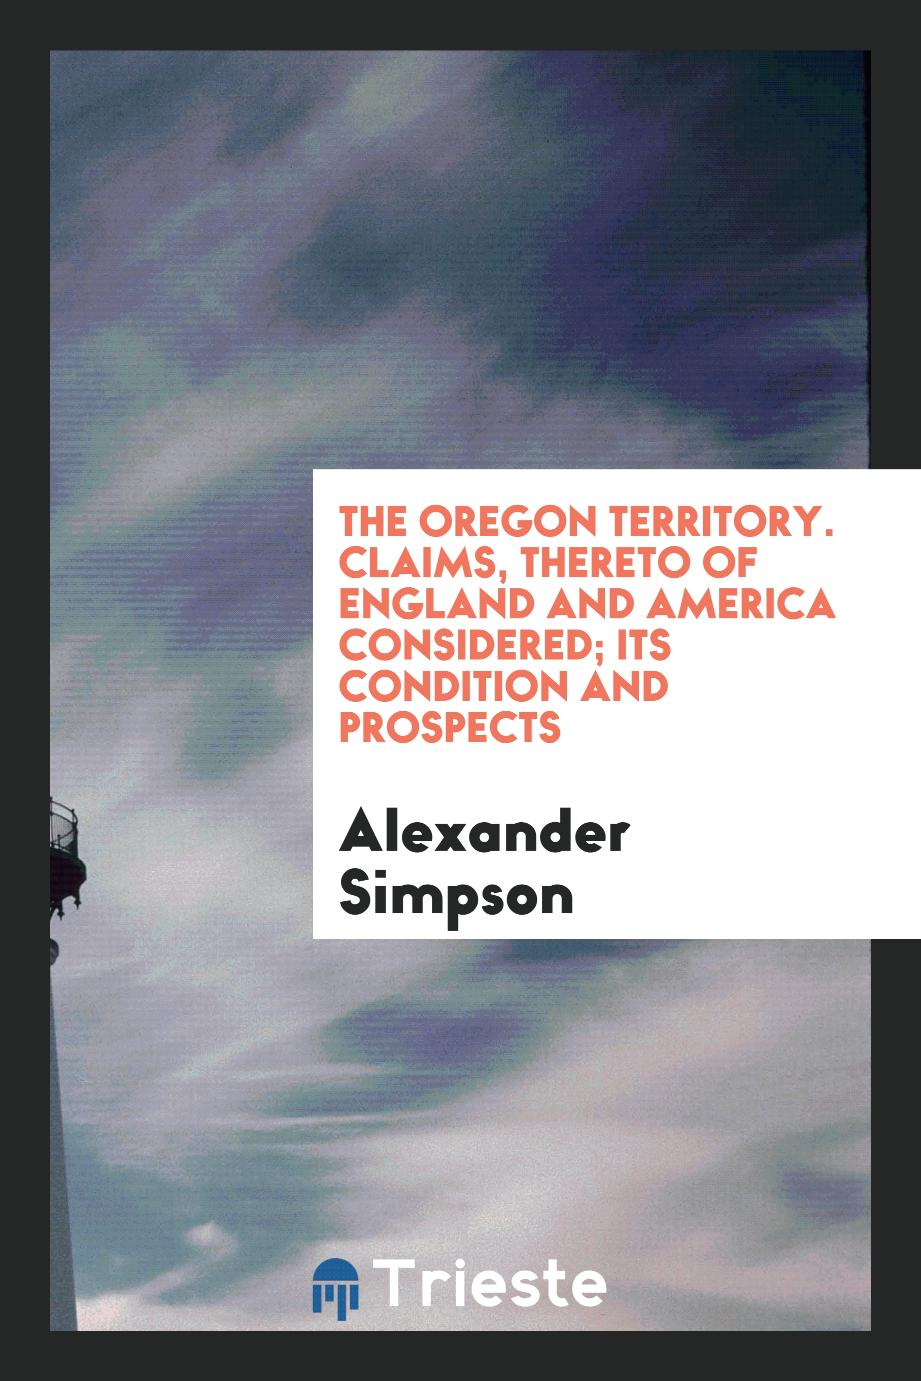 THE OREGON TERRITORY. Claims, thereto of England and America considered; its condition and prospects